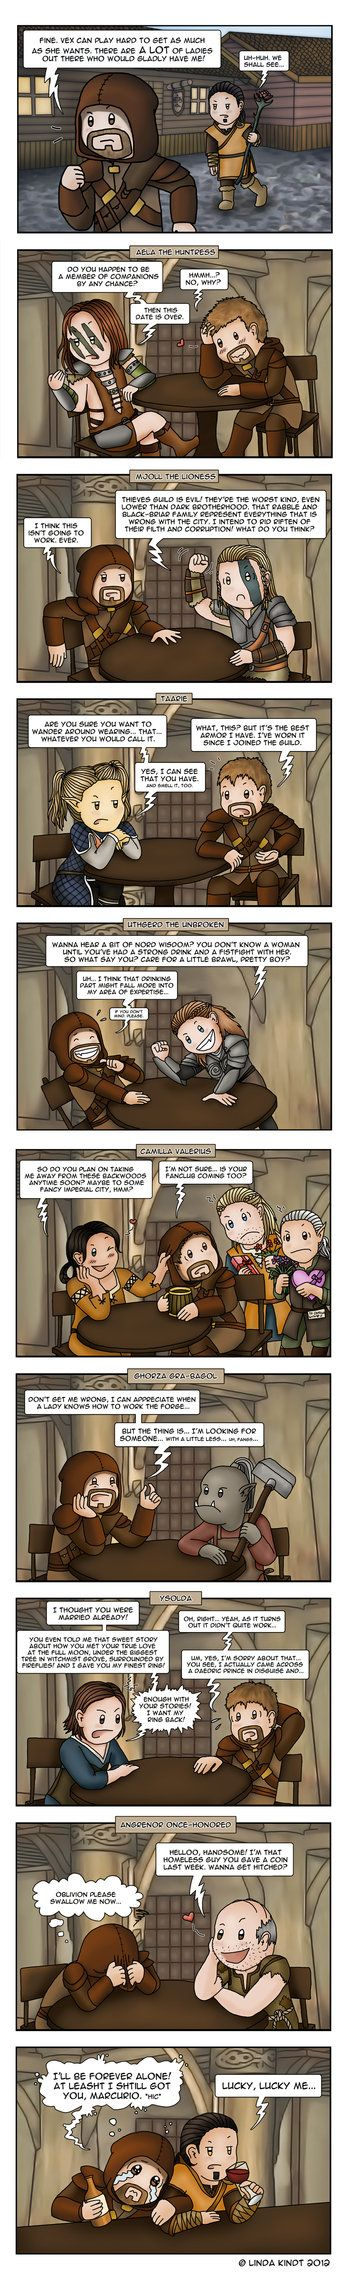 Dating in Skyrim - by Isriana | Skyrim - My Obsession ...